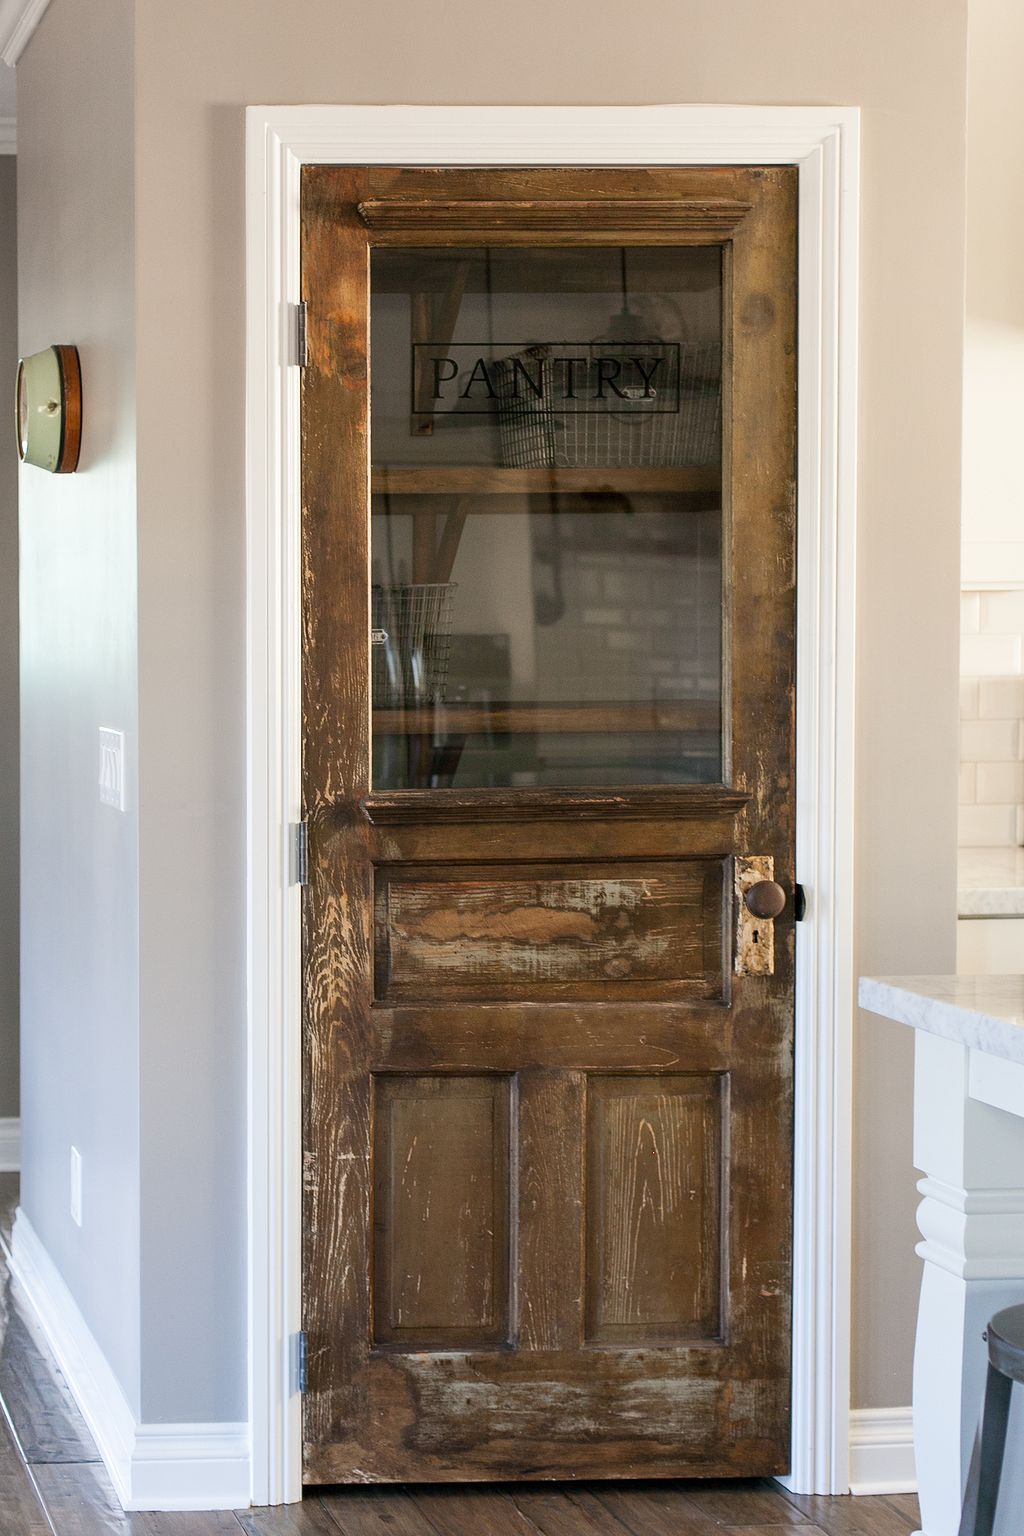 59 Old Door For Pantry Door Inspiration Farmhouse Doors Farmhouse Pantry Home Remodeling